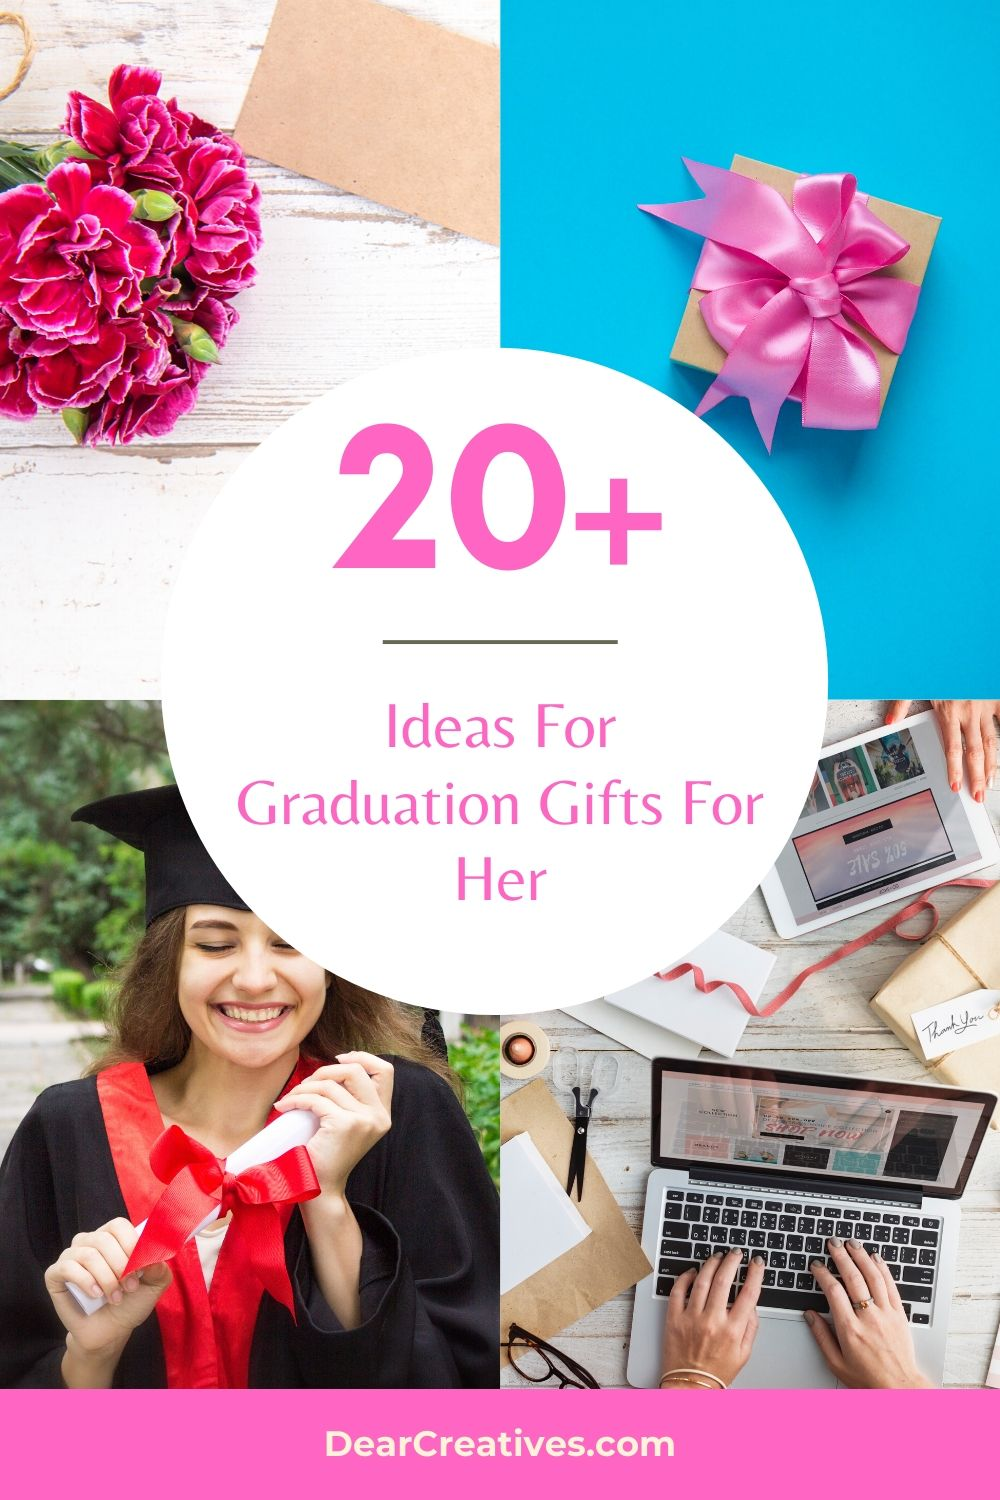 Ideas For Graduation Gifts For Her